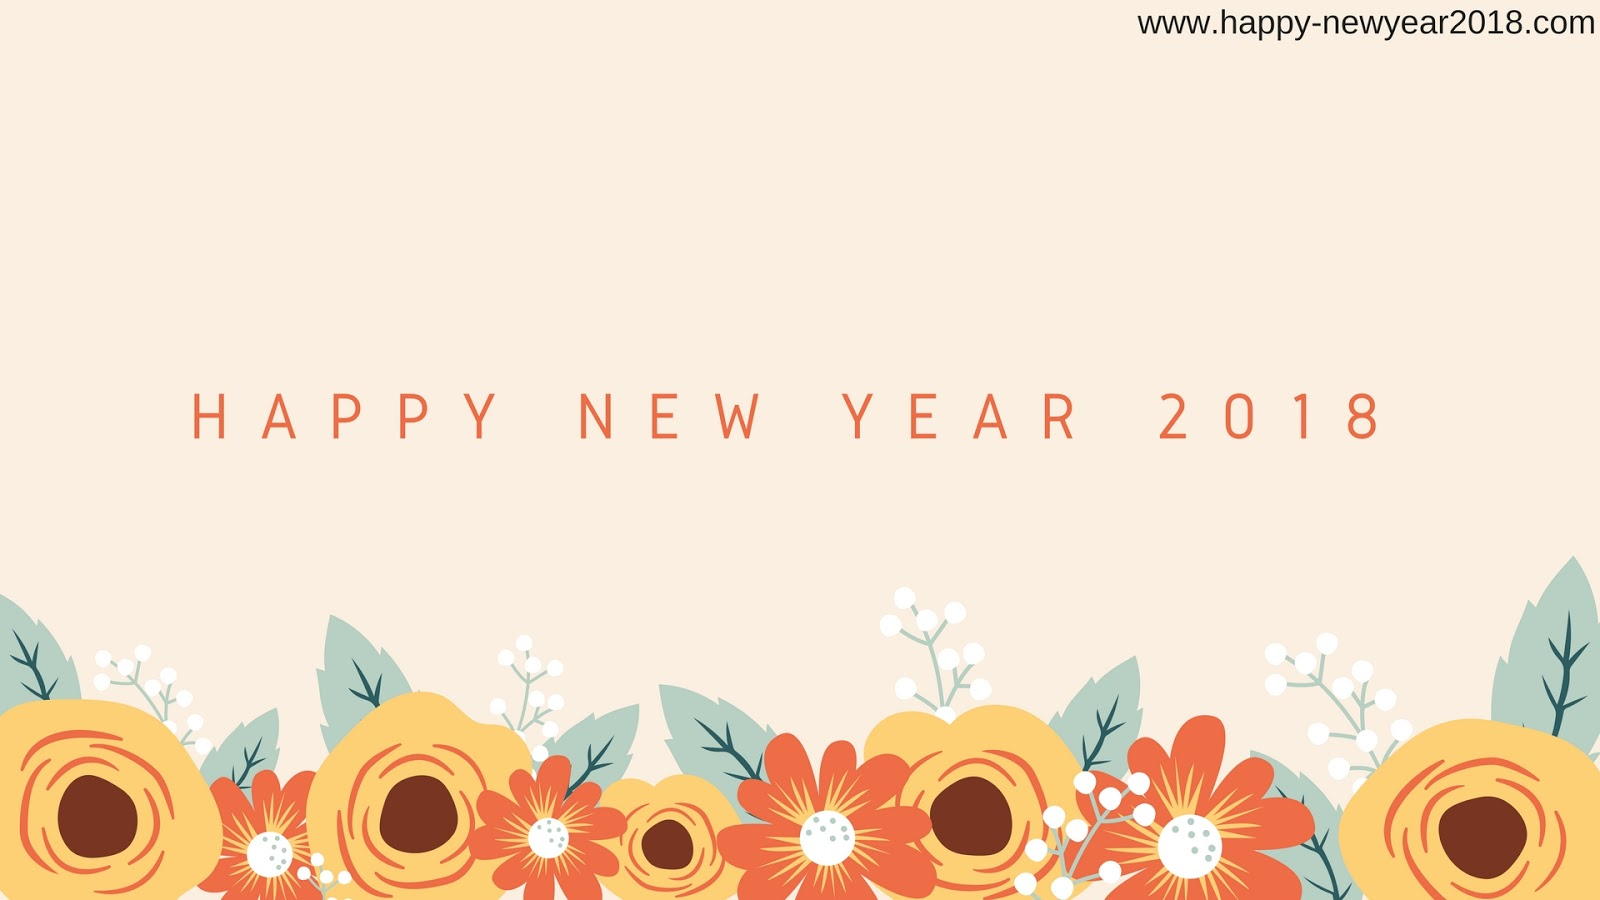 beautiful new year 2018 images